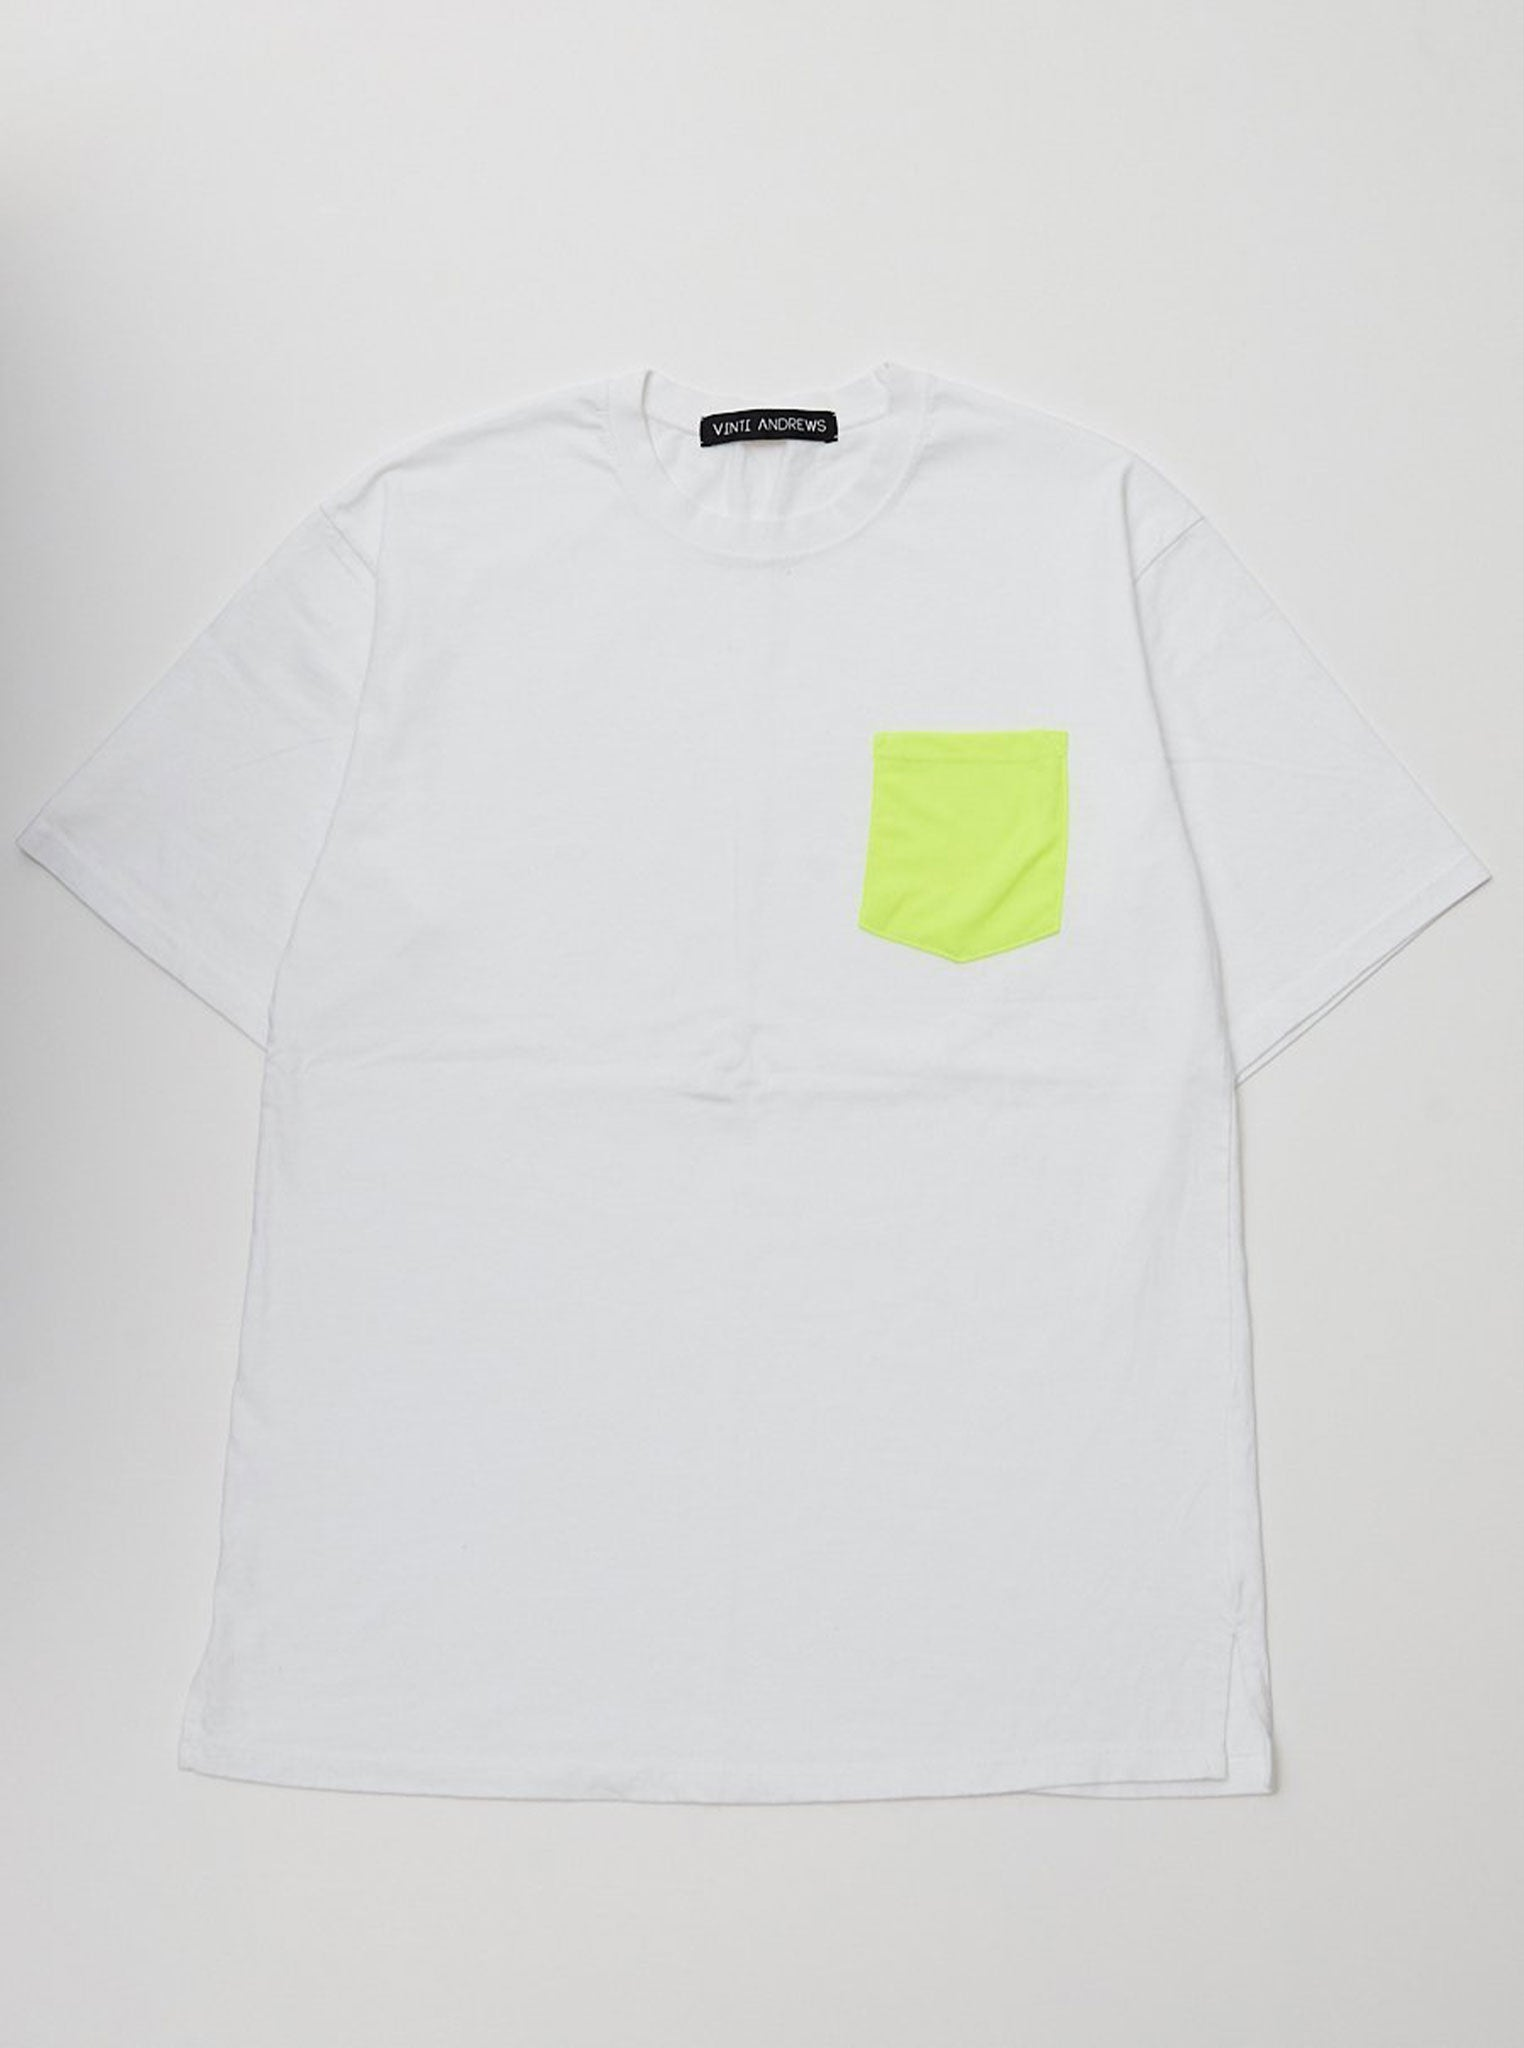 Vinti Andrews Neon Pocket T-Shirt White